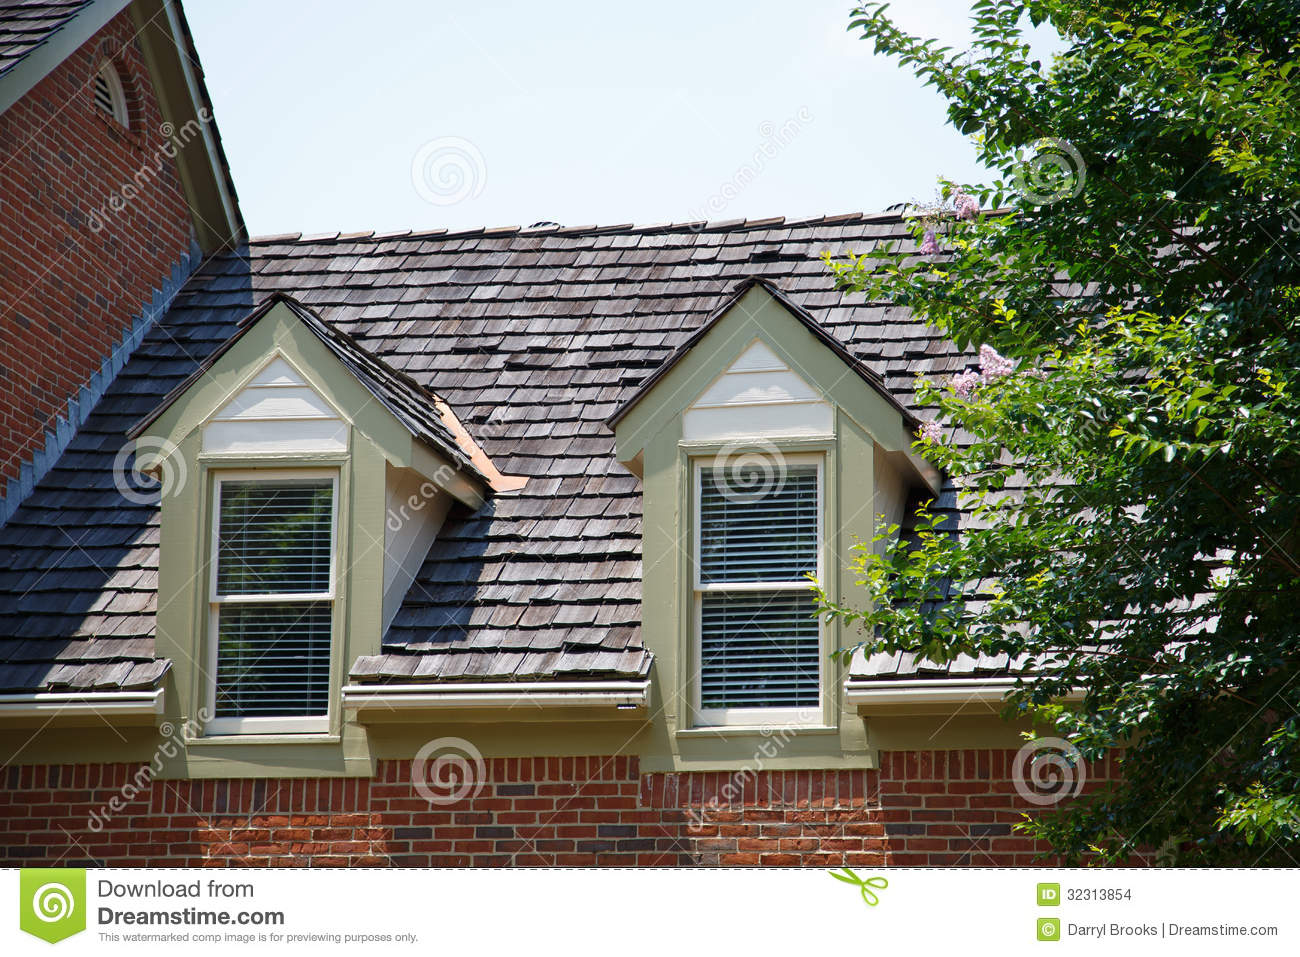 Two Dormers On Brick Homes With Wood Shingles Stock Photo